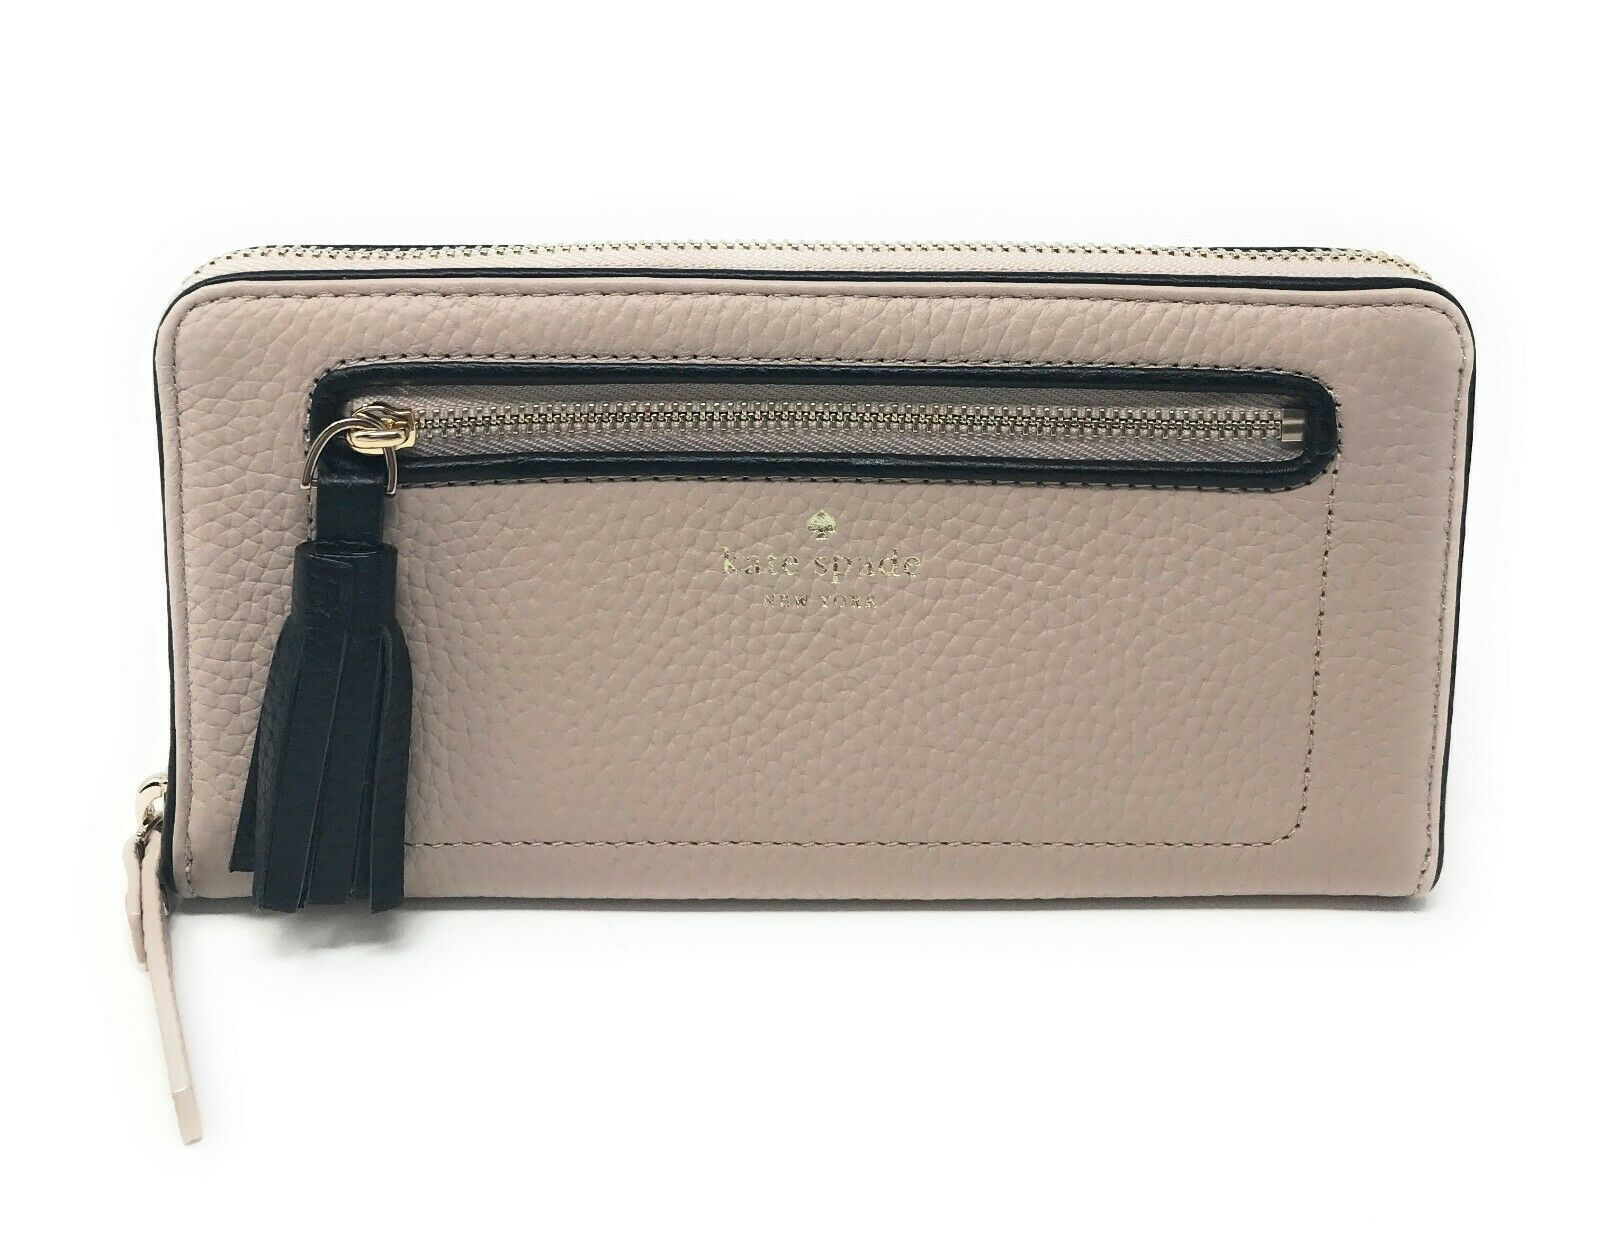 Kate Spade Chester Street Neda Warm Beige Black Zip Around Wallet WLRU2654 $189